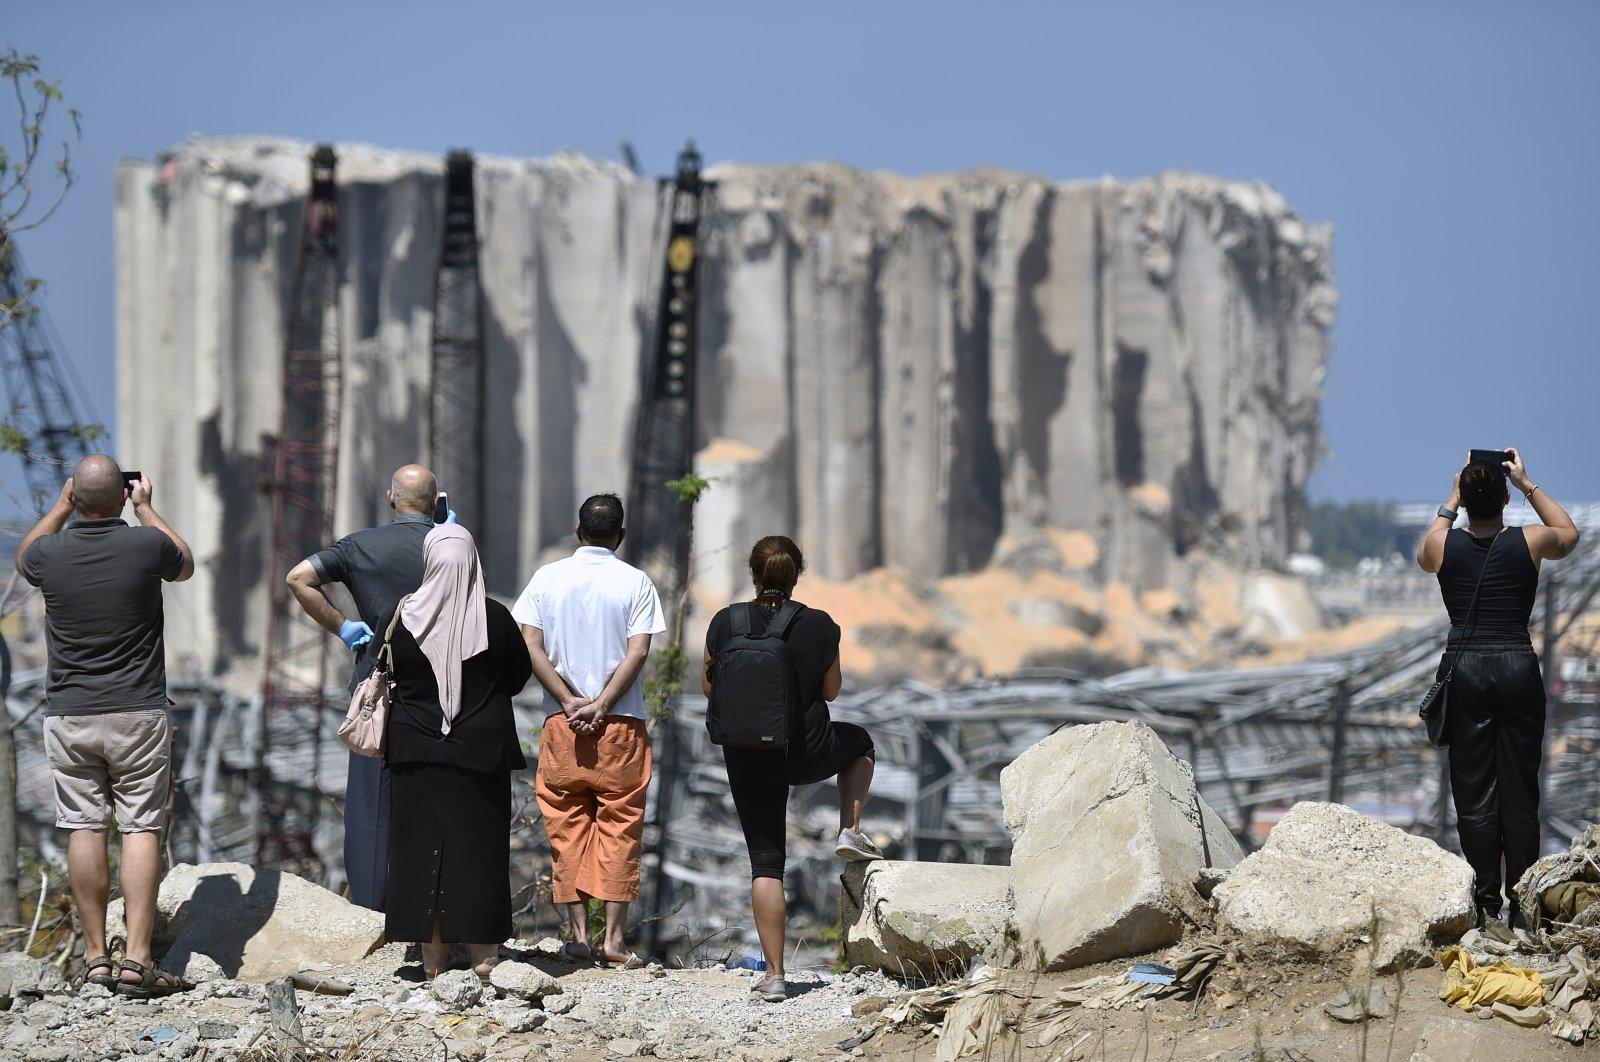 Lebanese people take pictures of damaged grain silos in Beirut port following a huge explosion rocked the city in Beirut, Lebanon, Aug. 23, 2020. (EPA Photo)